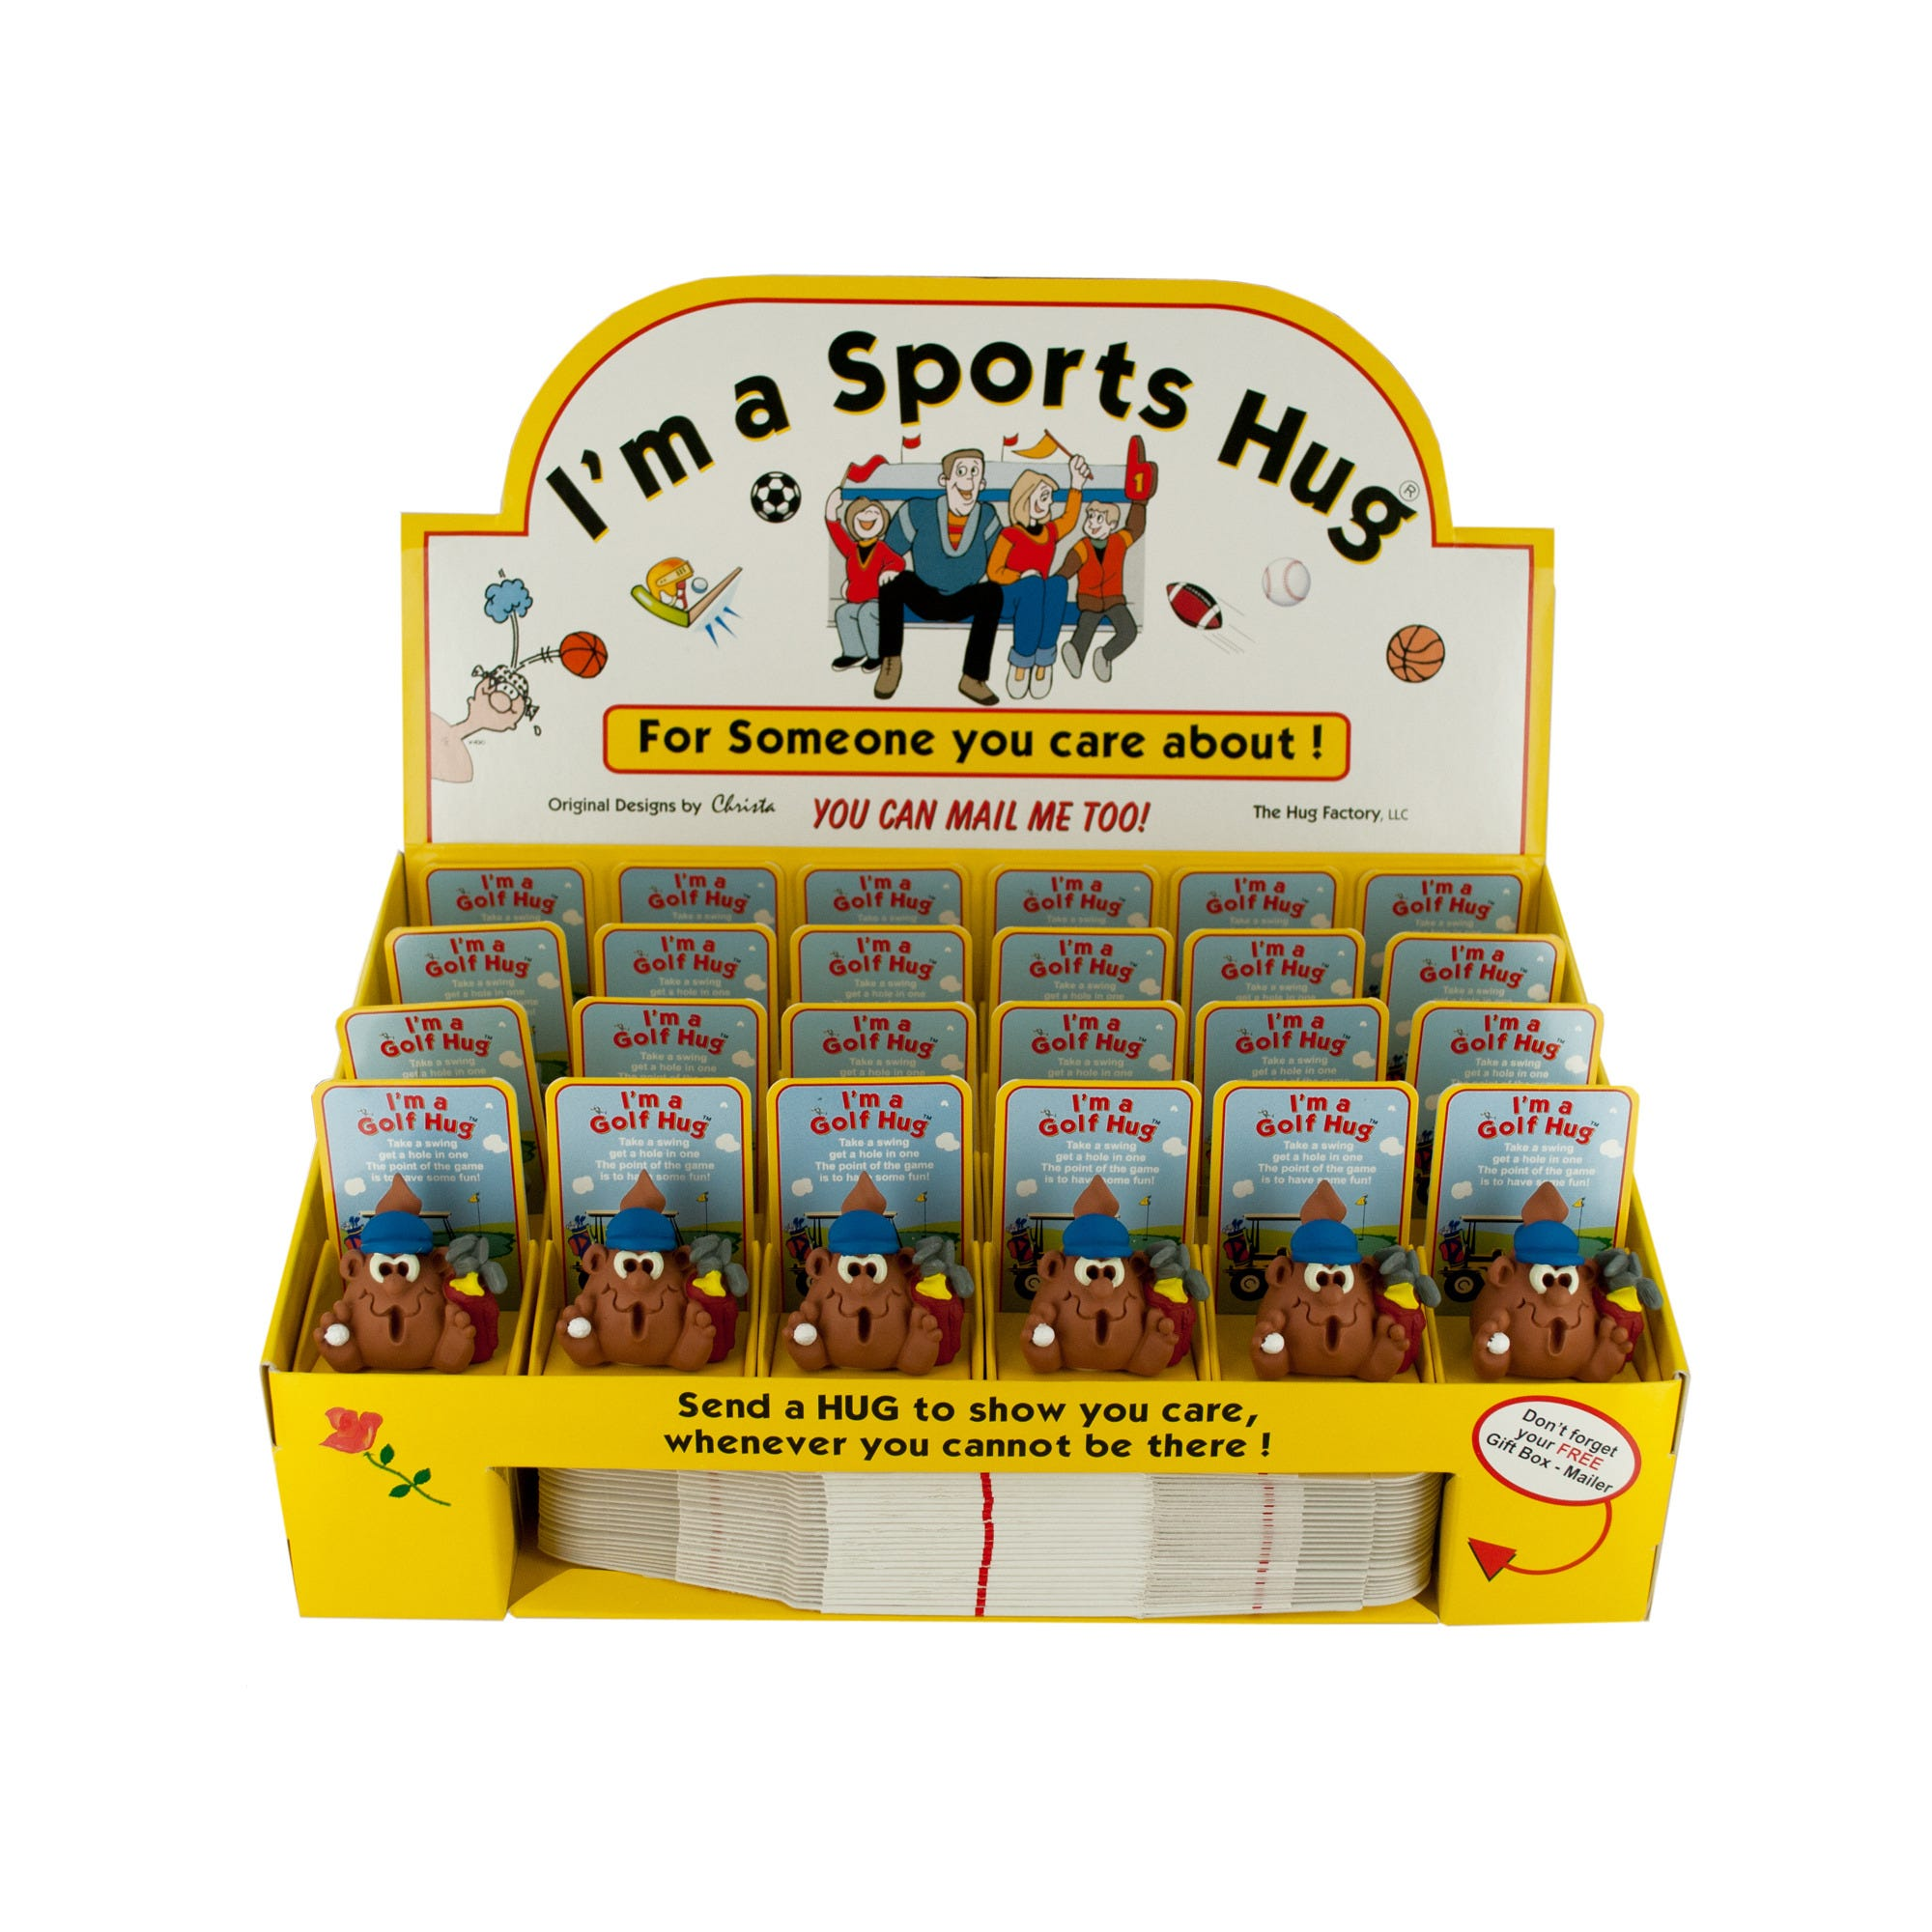 GOLF Hug Figurine with Gift Boxes Countertop Display- Qty 24